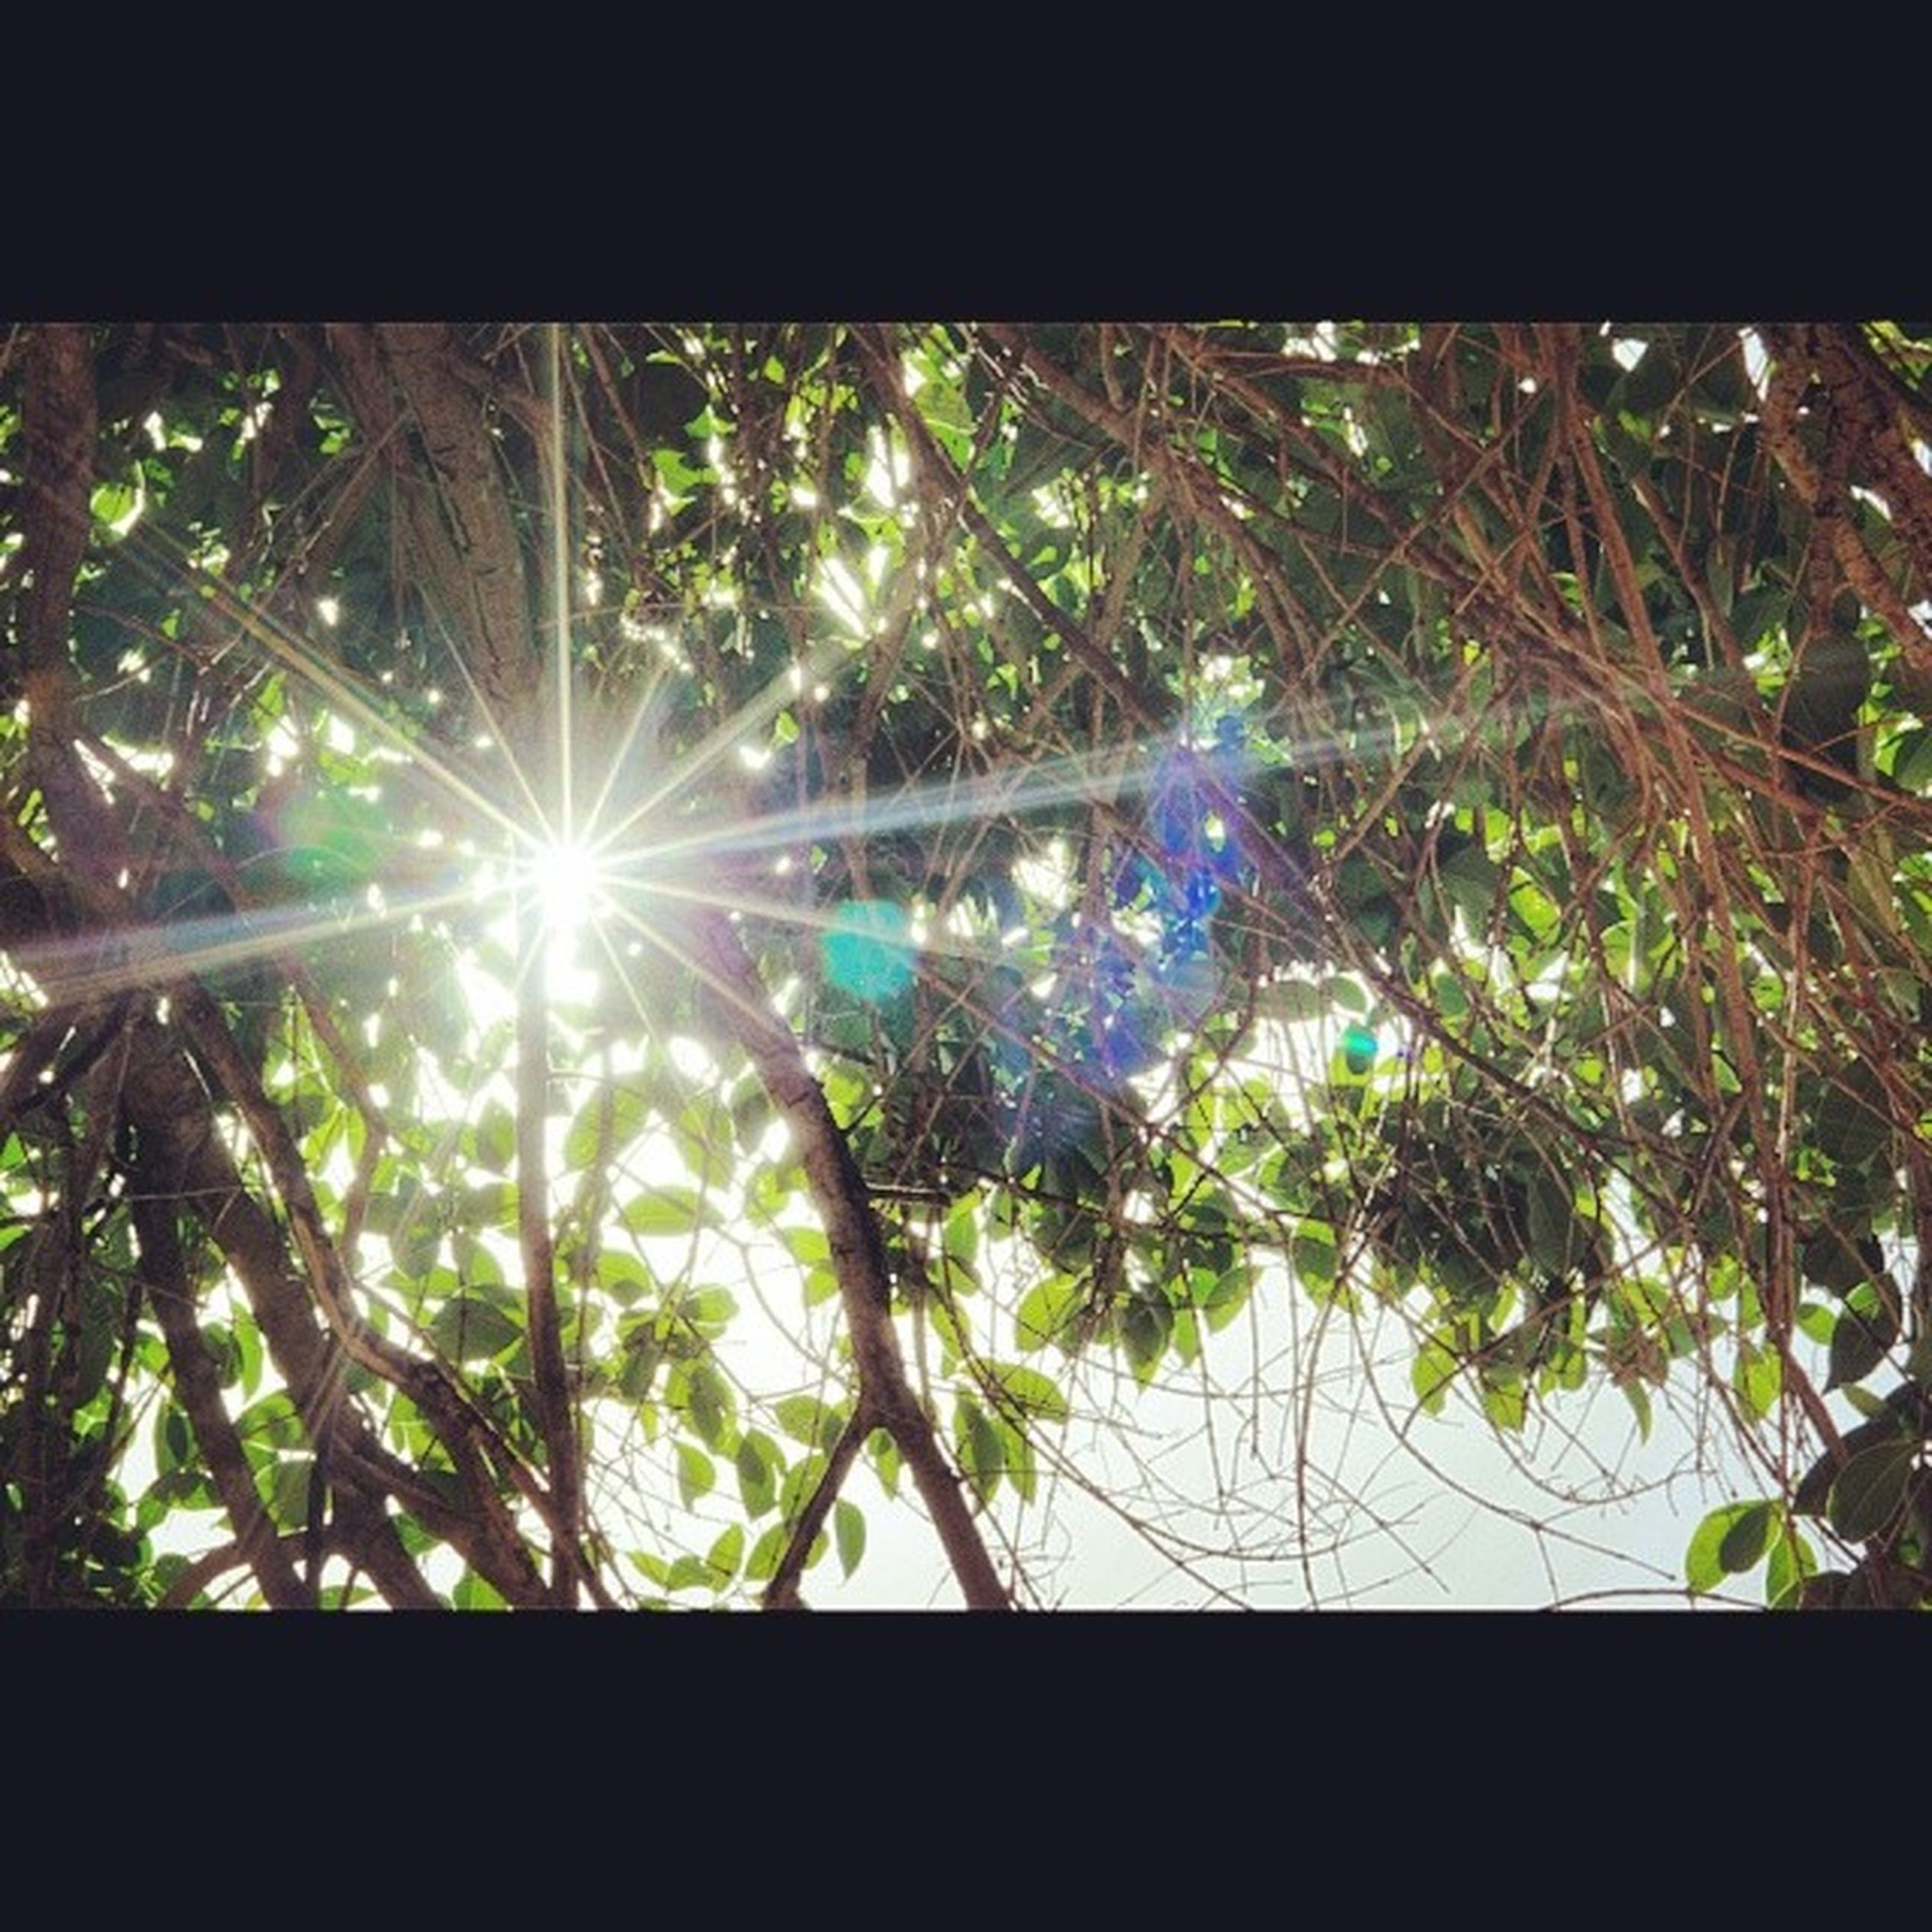 tree, growth, branch, sun, nature, sunlight, lens flare, low angle view, close-up, green color, plant, leaf, sunbeam, beauty in nature, day, no people, outdoors, tranquility, focus on foreground, auto post production filter